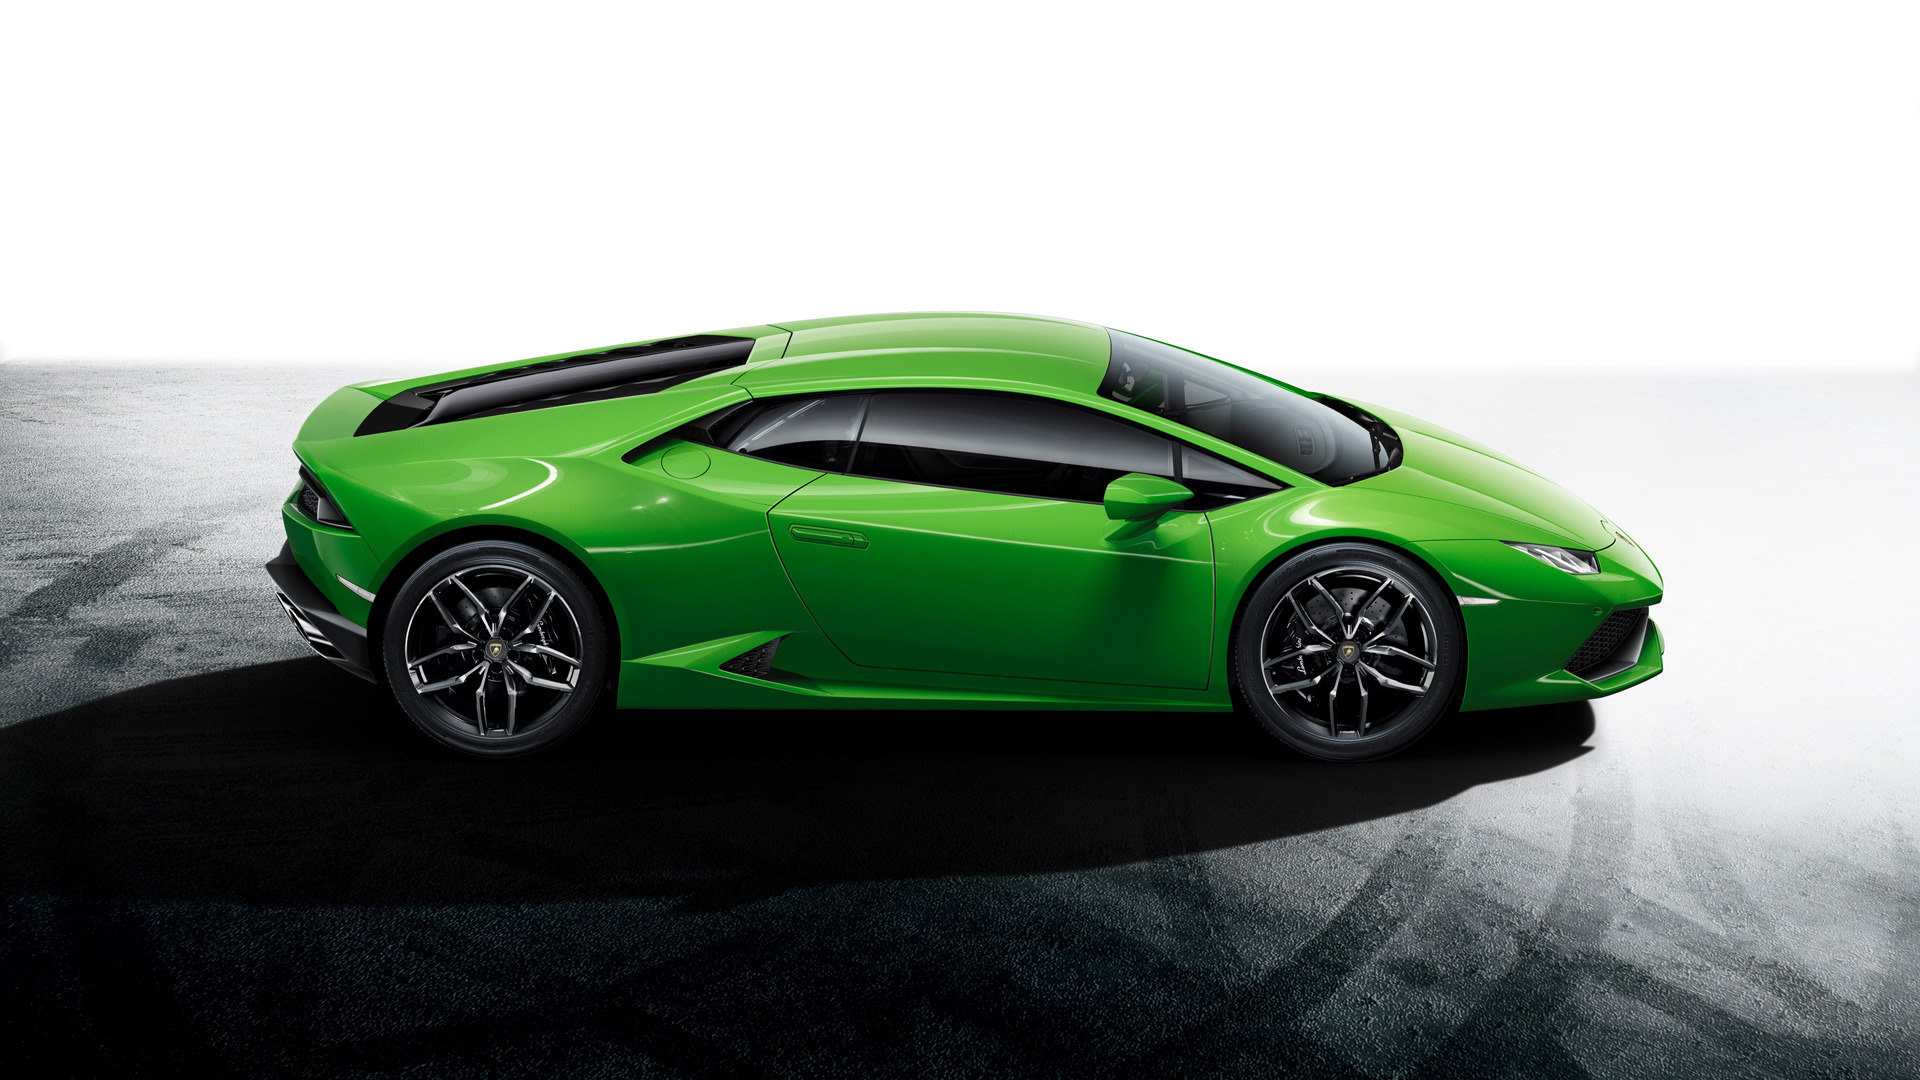 lamborghini huracan wallpapers images photos pictures backgrounds. Black Bedroom Furniture Sets. Home Design Ideas